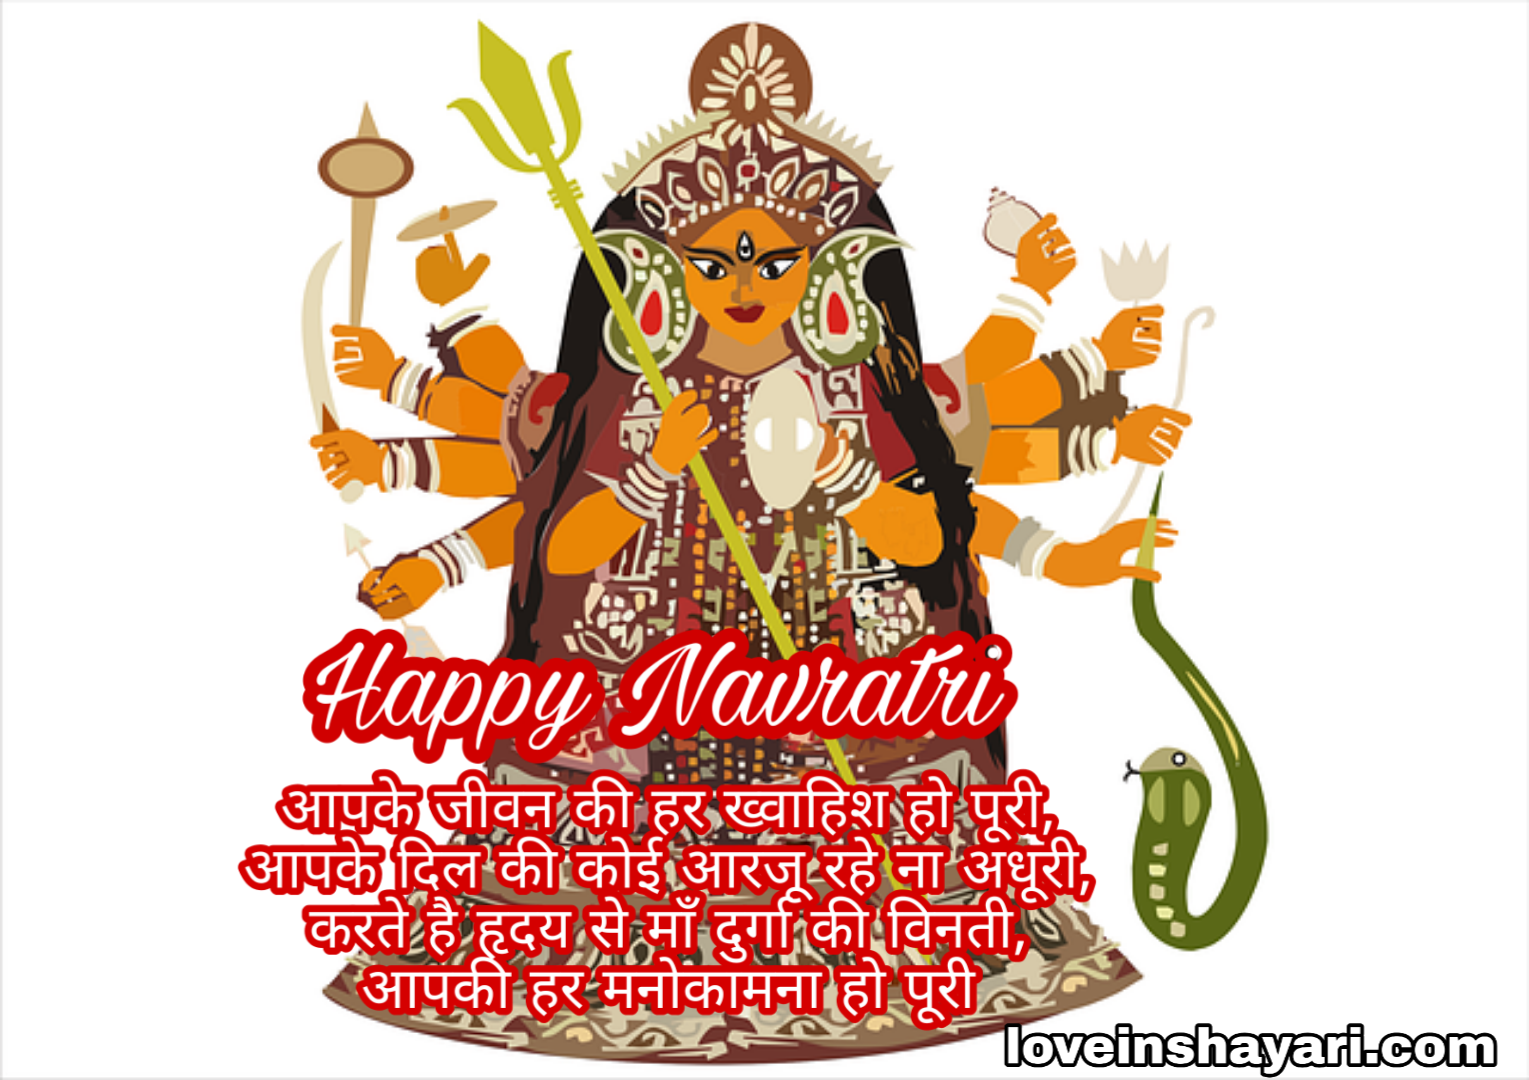 Happy Navratri wishes shayari message quotes